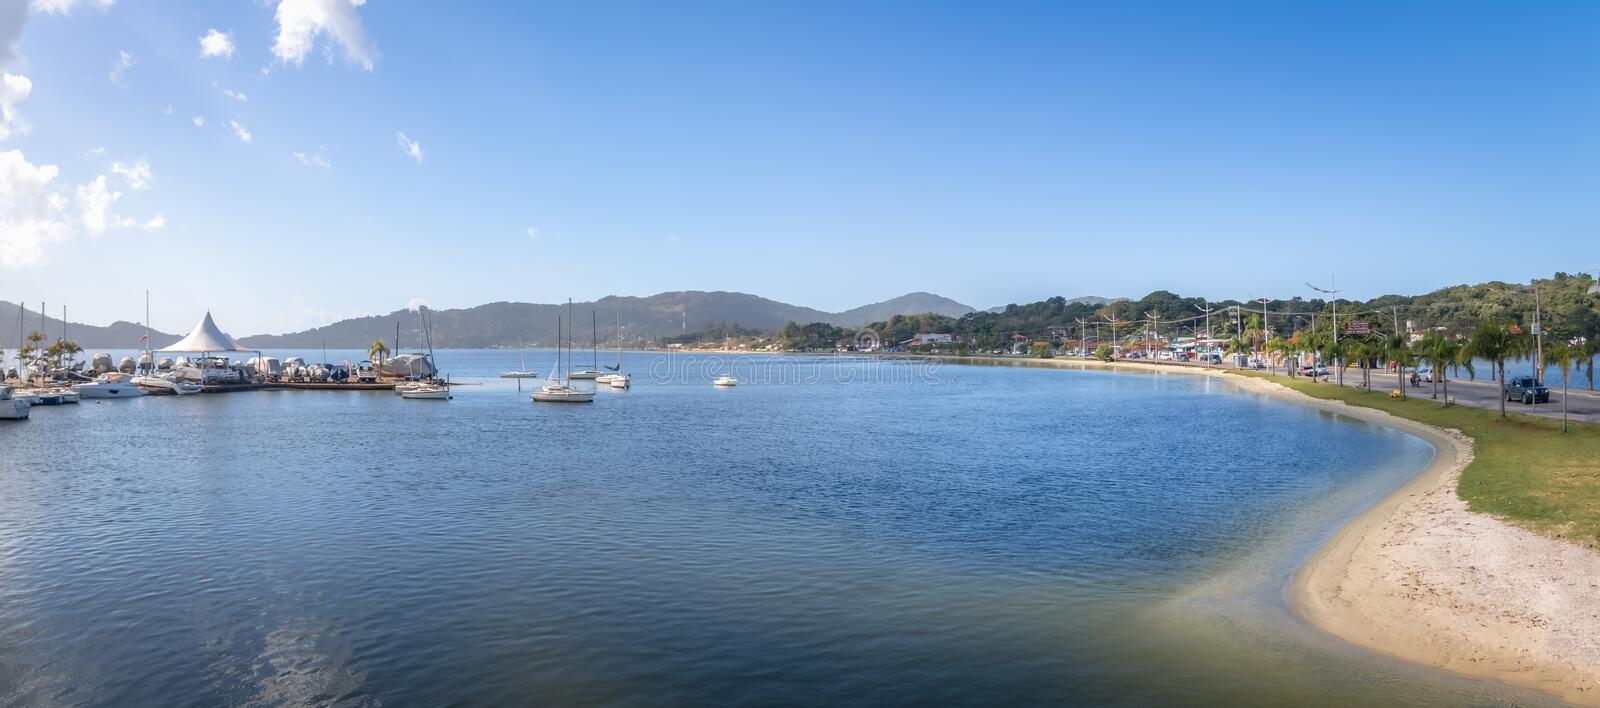 Panoramic view of Lagoa da Conceicao - Florianopolis, Santa Catarina, Brazil. Panoramic view of Lagoa da Conceicao in Florianopolis, Santa Catarina, Brazil royalty free stock images